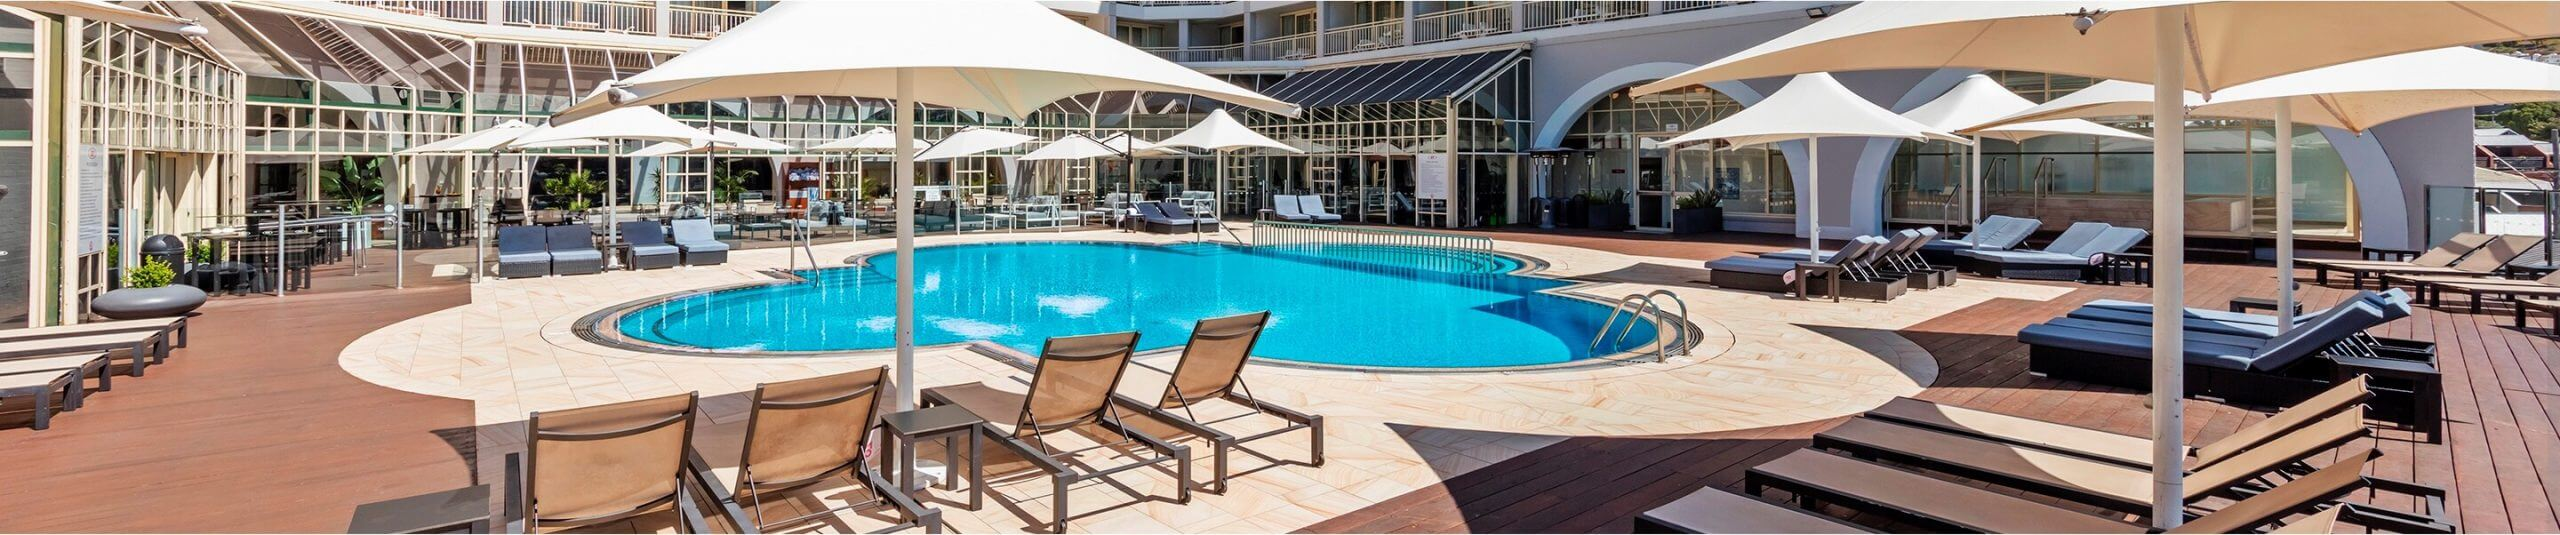 Crowne PLaza Terrigal swimming pool